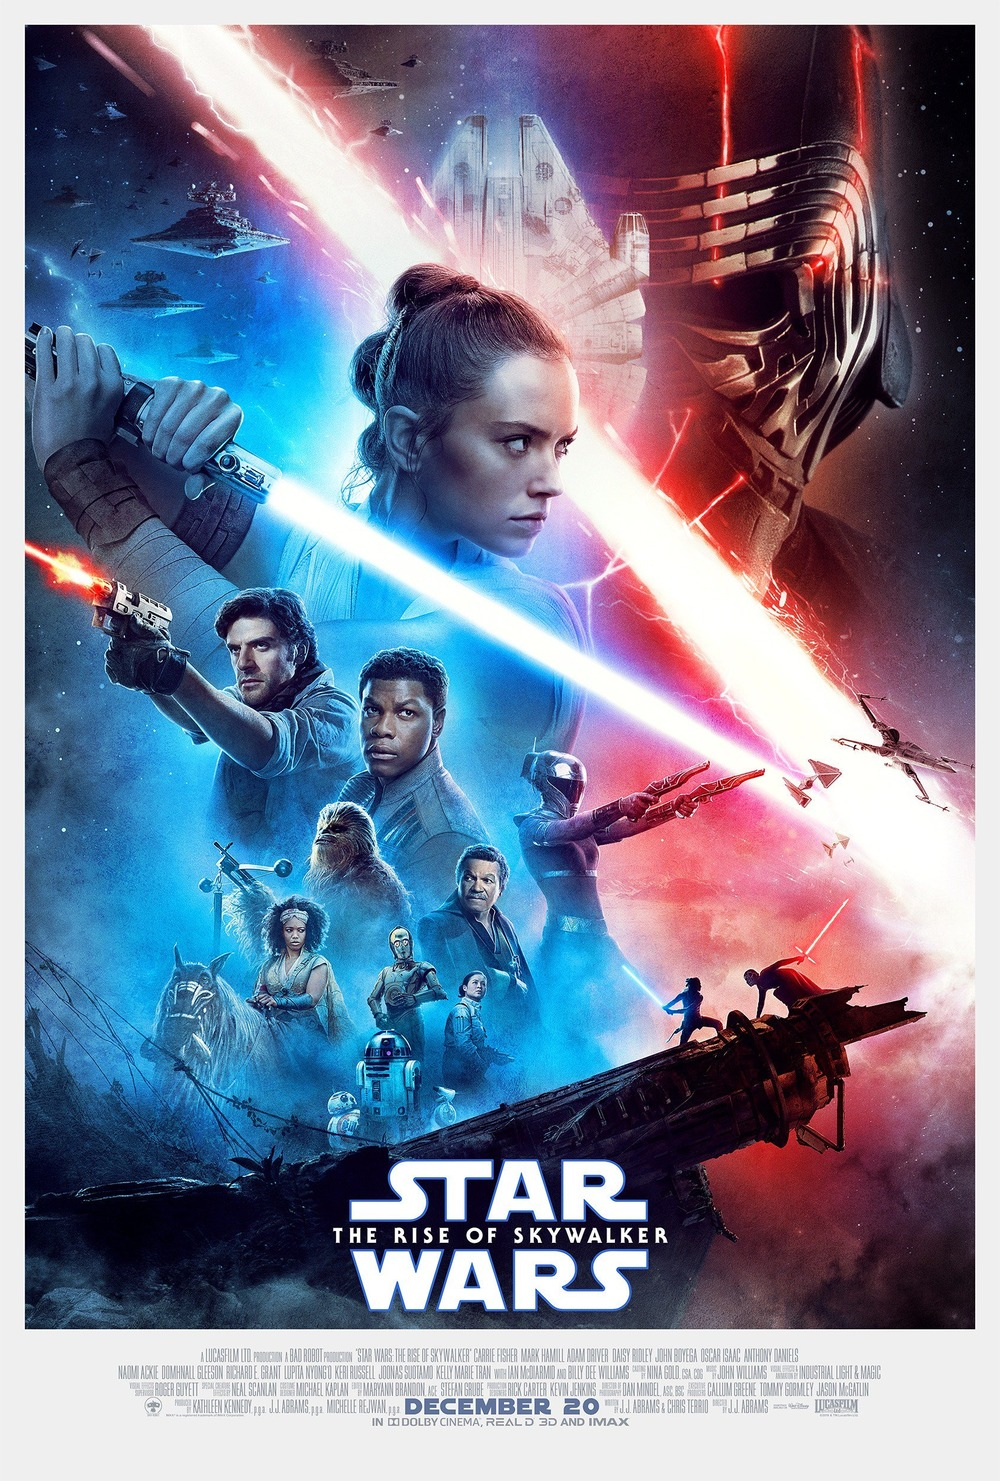 Star Wars The Rise Of Skywalker Dvd Release Date Redbox Netflix Itunes Amazon